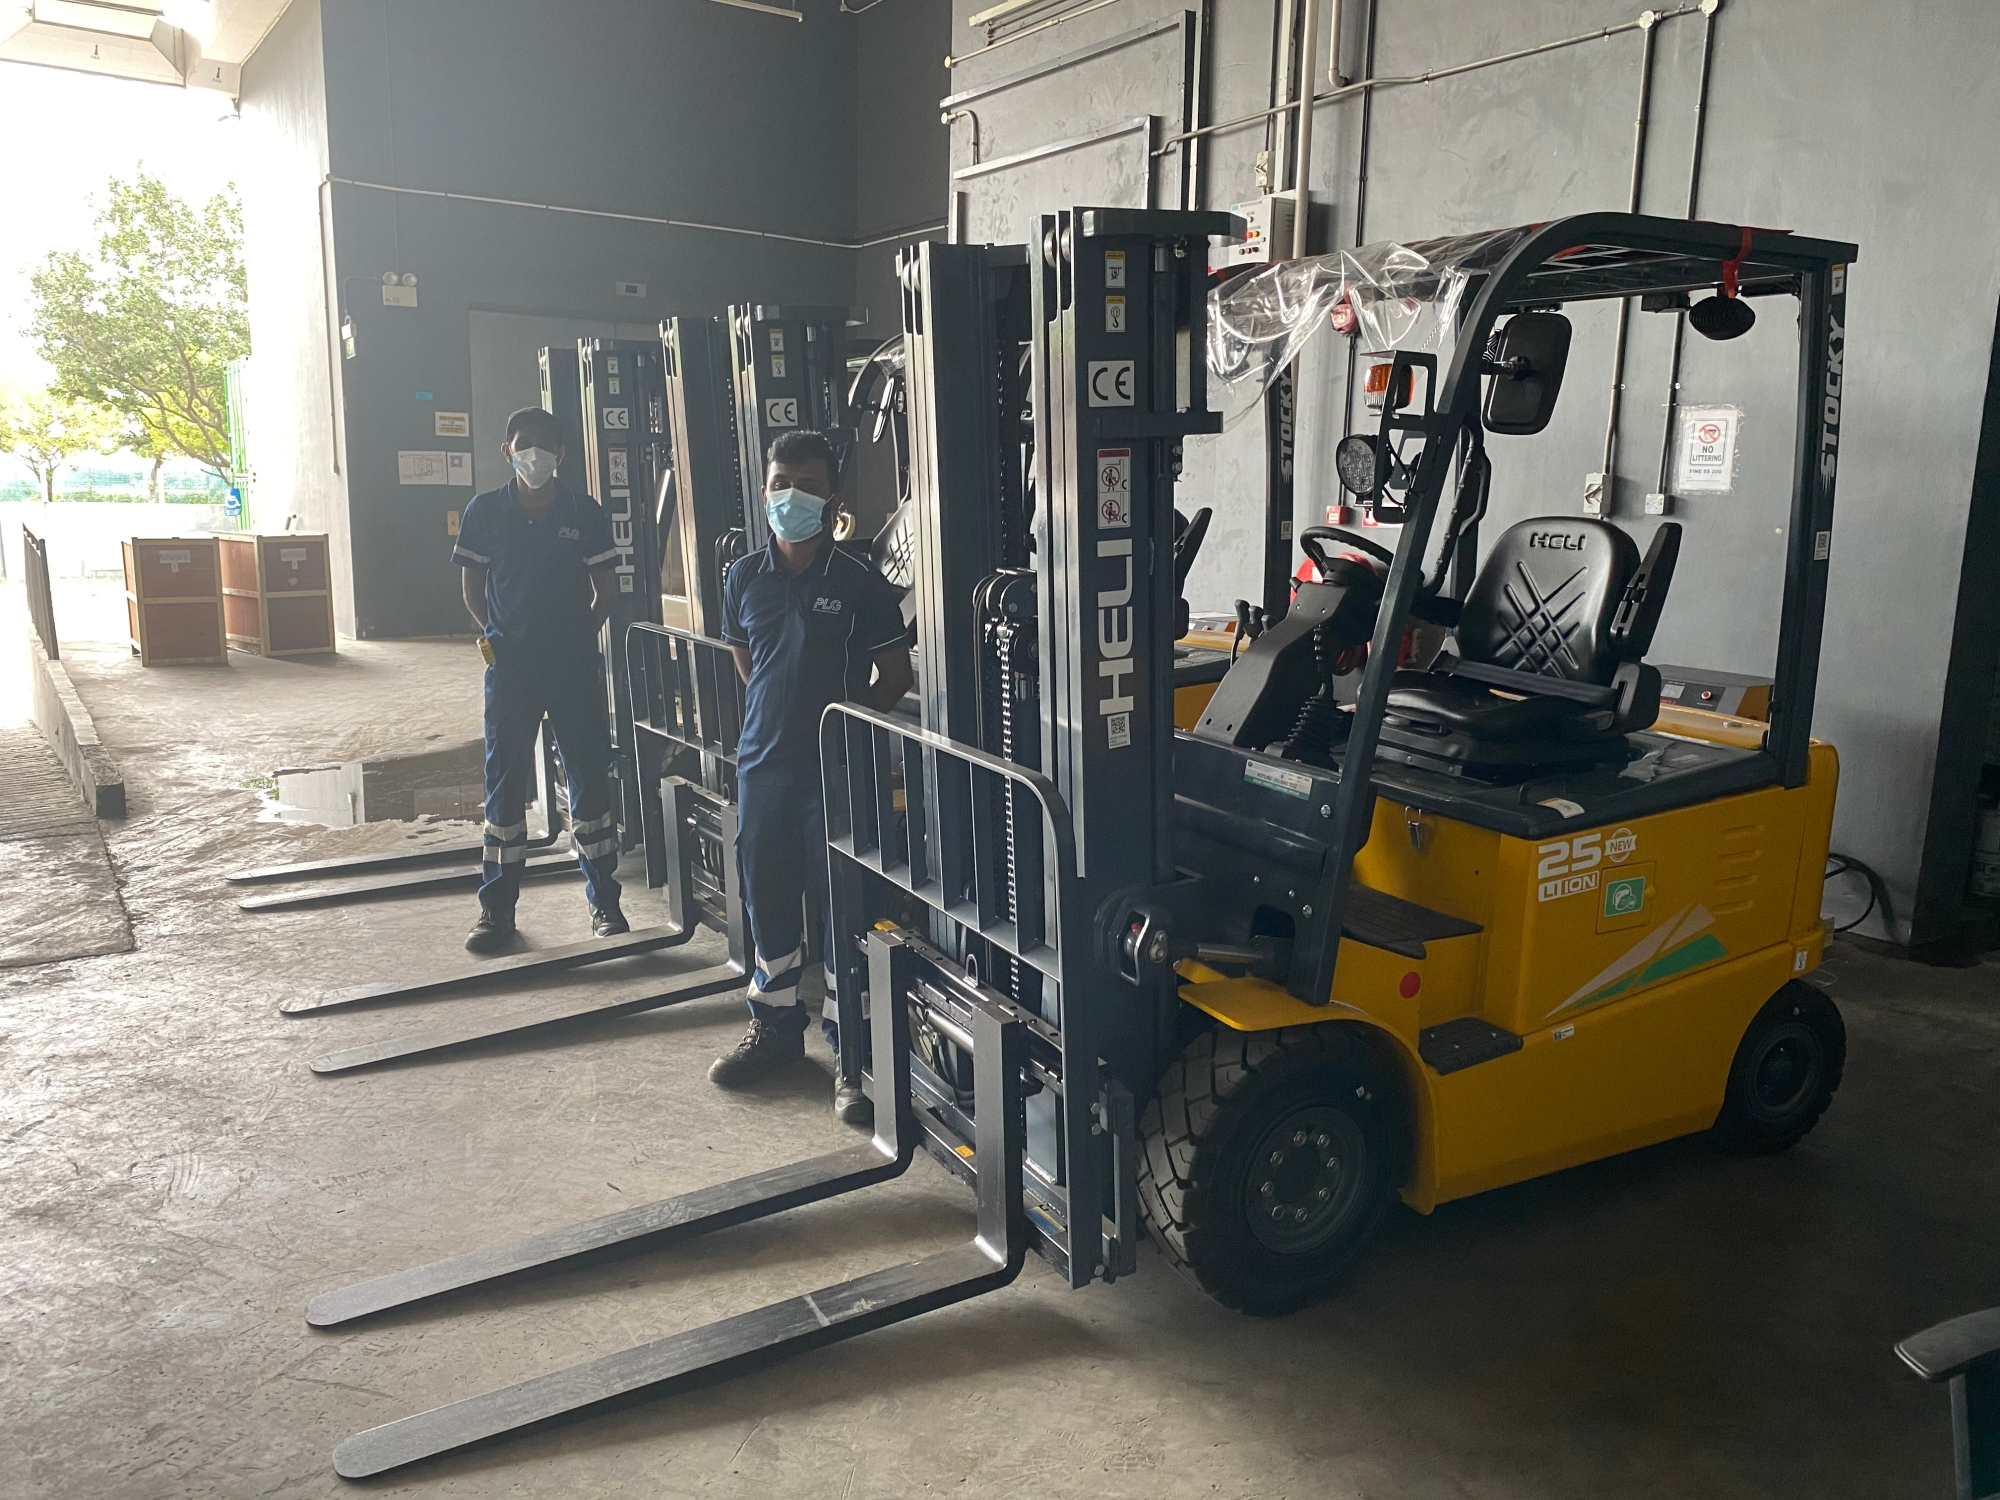 Yet another 3 units of Lithium Forklift delivered out